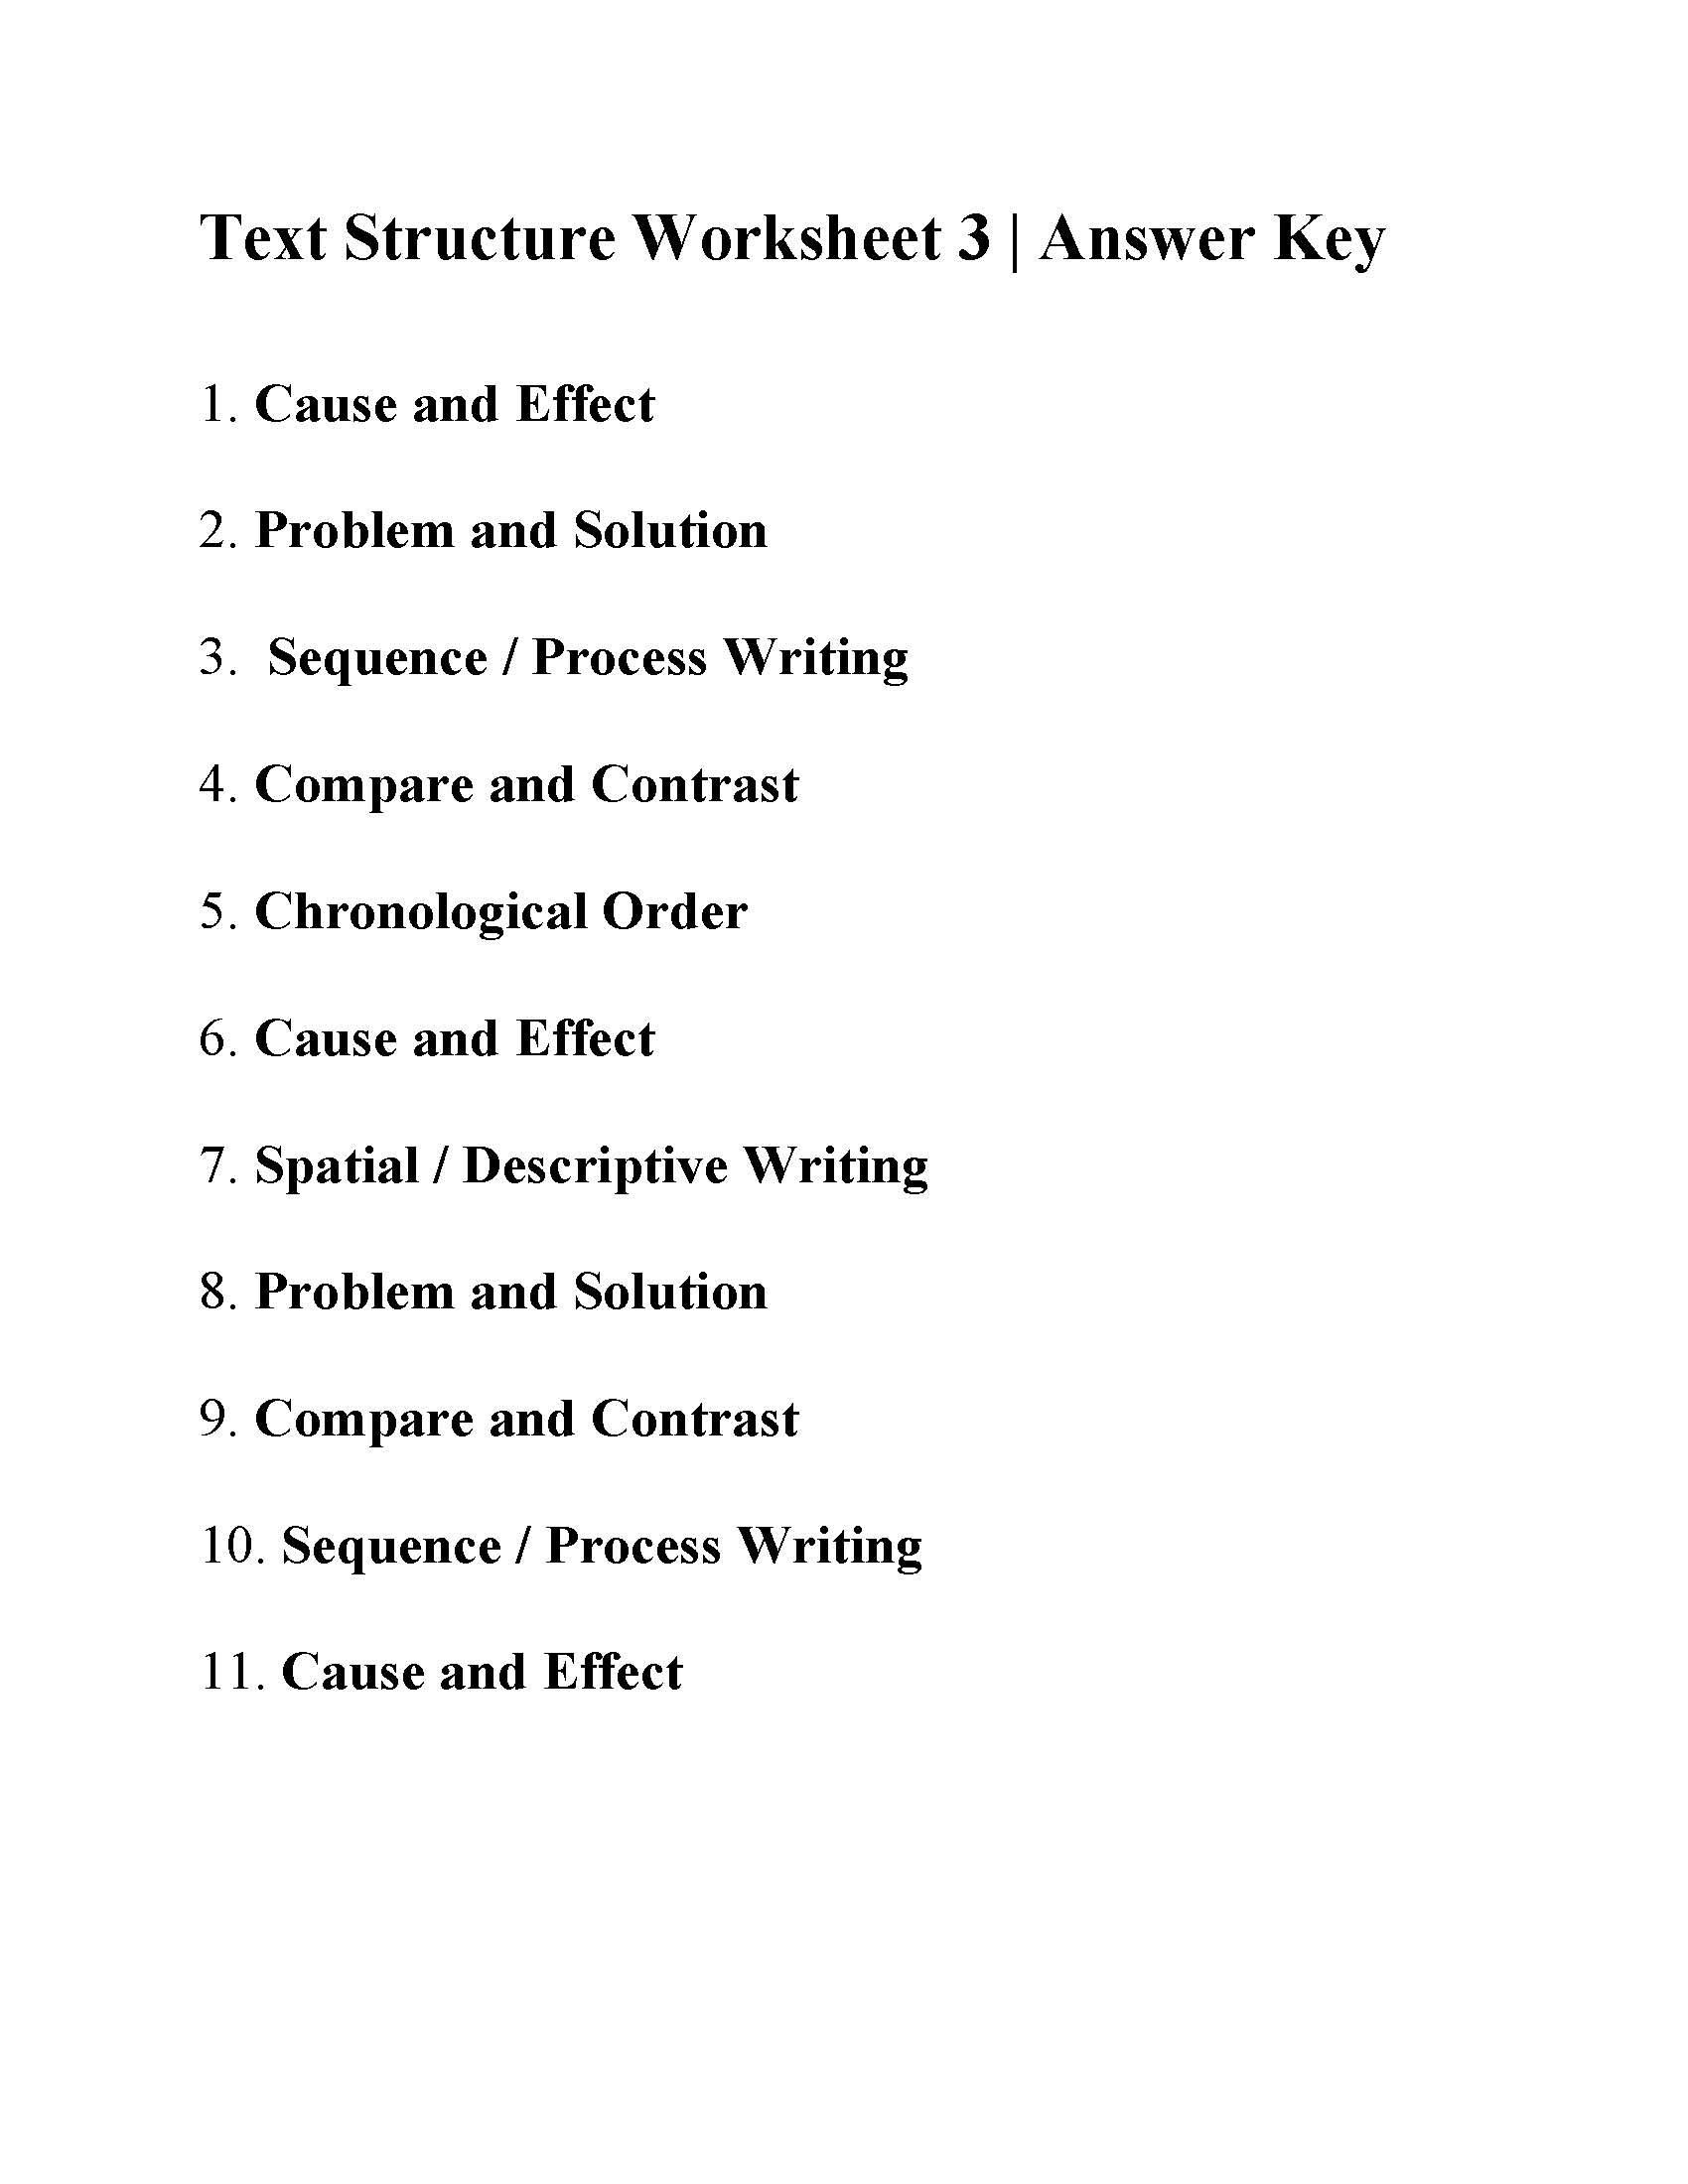 Text Structure Worksheets 4th Grade This is the Answer Key for the Text Structure Worksheet 3